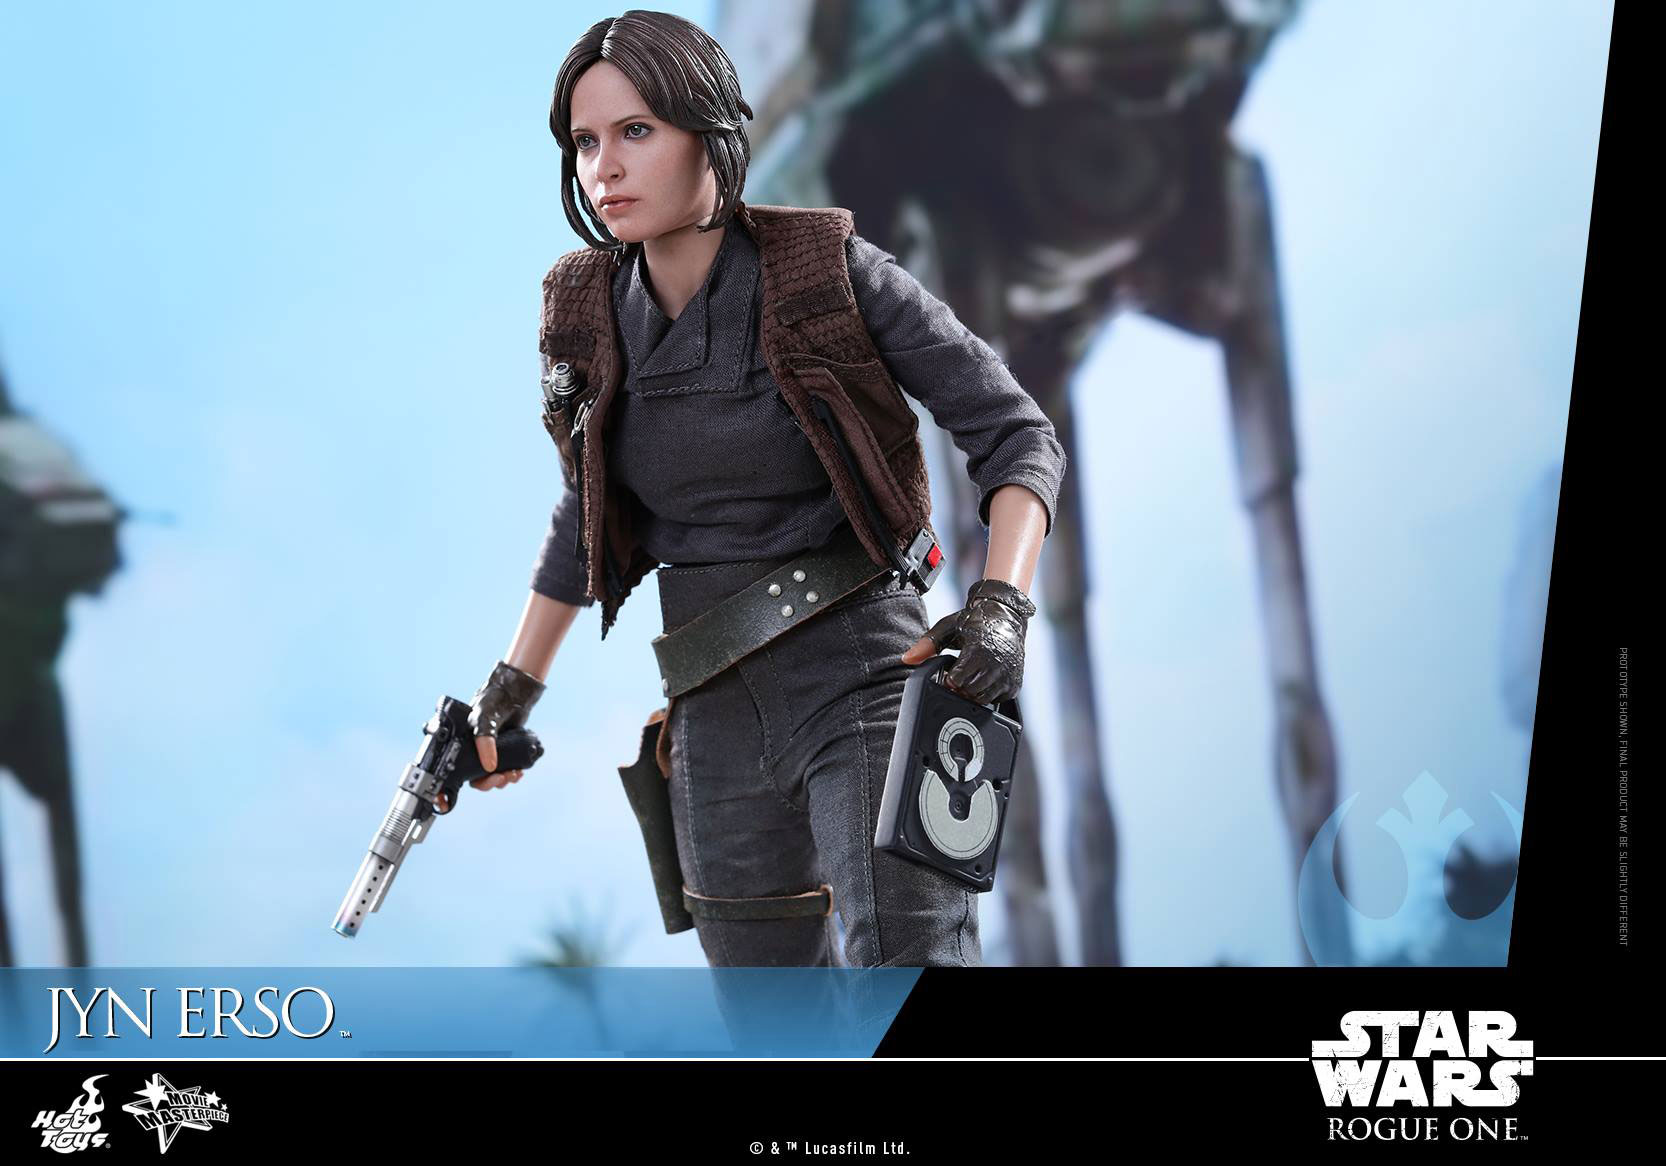 hot-toys-star-wars-rogue-one-jyn-erso-figure-2